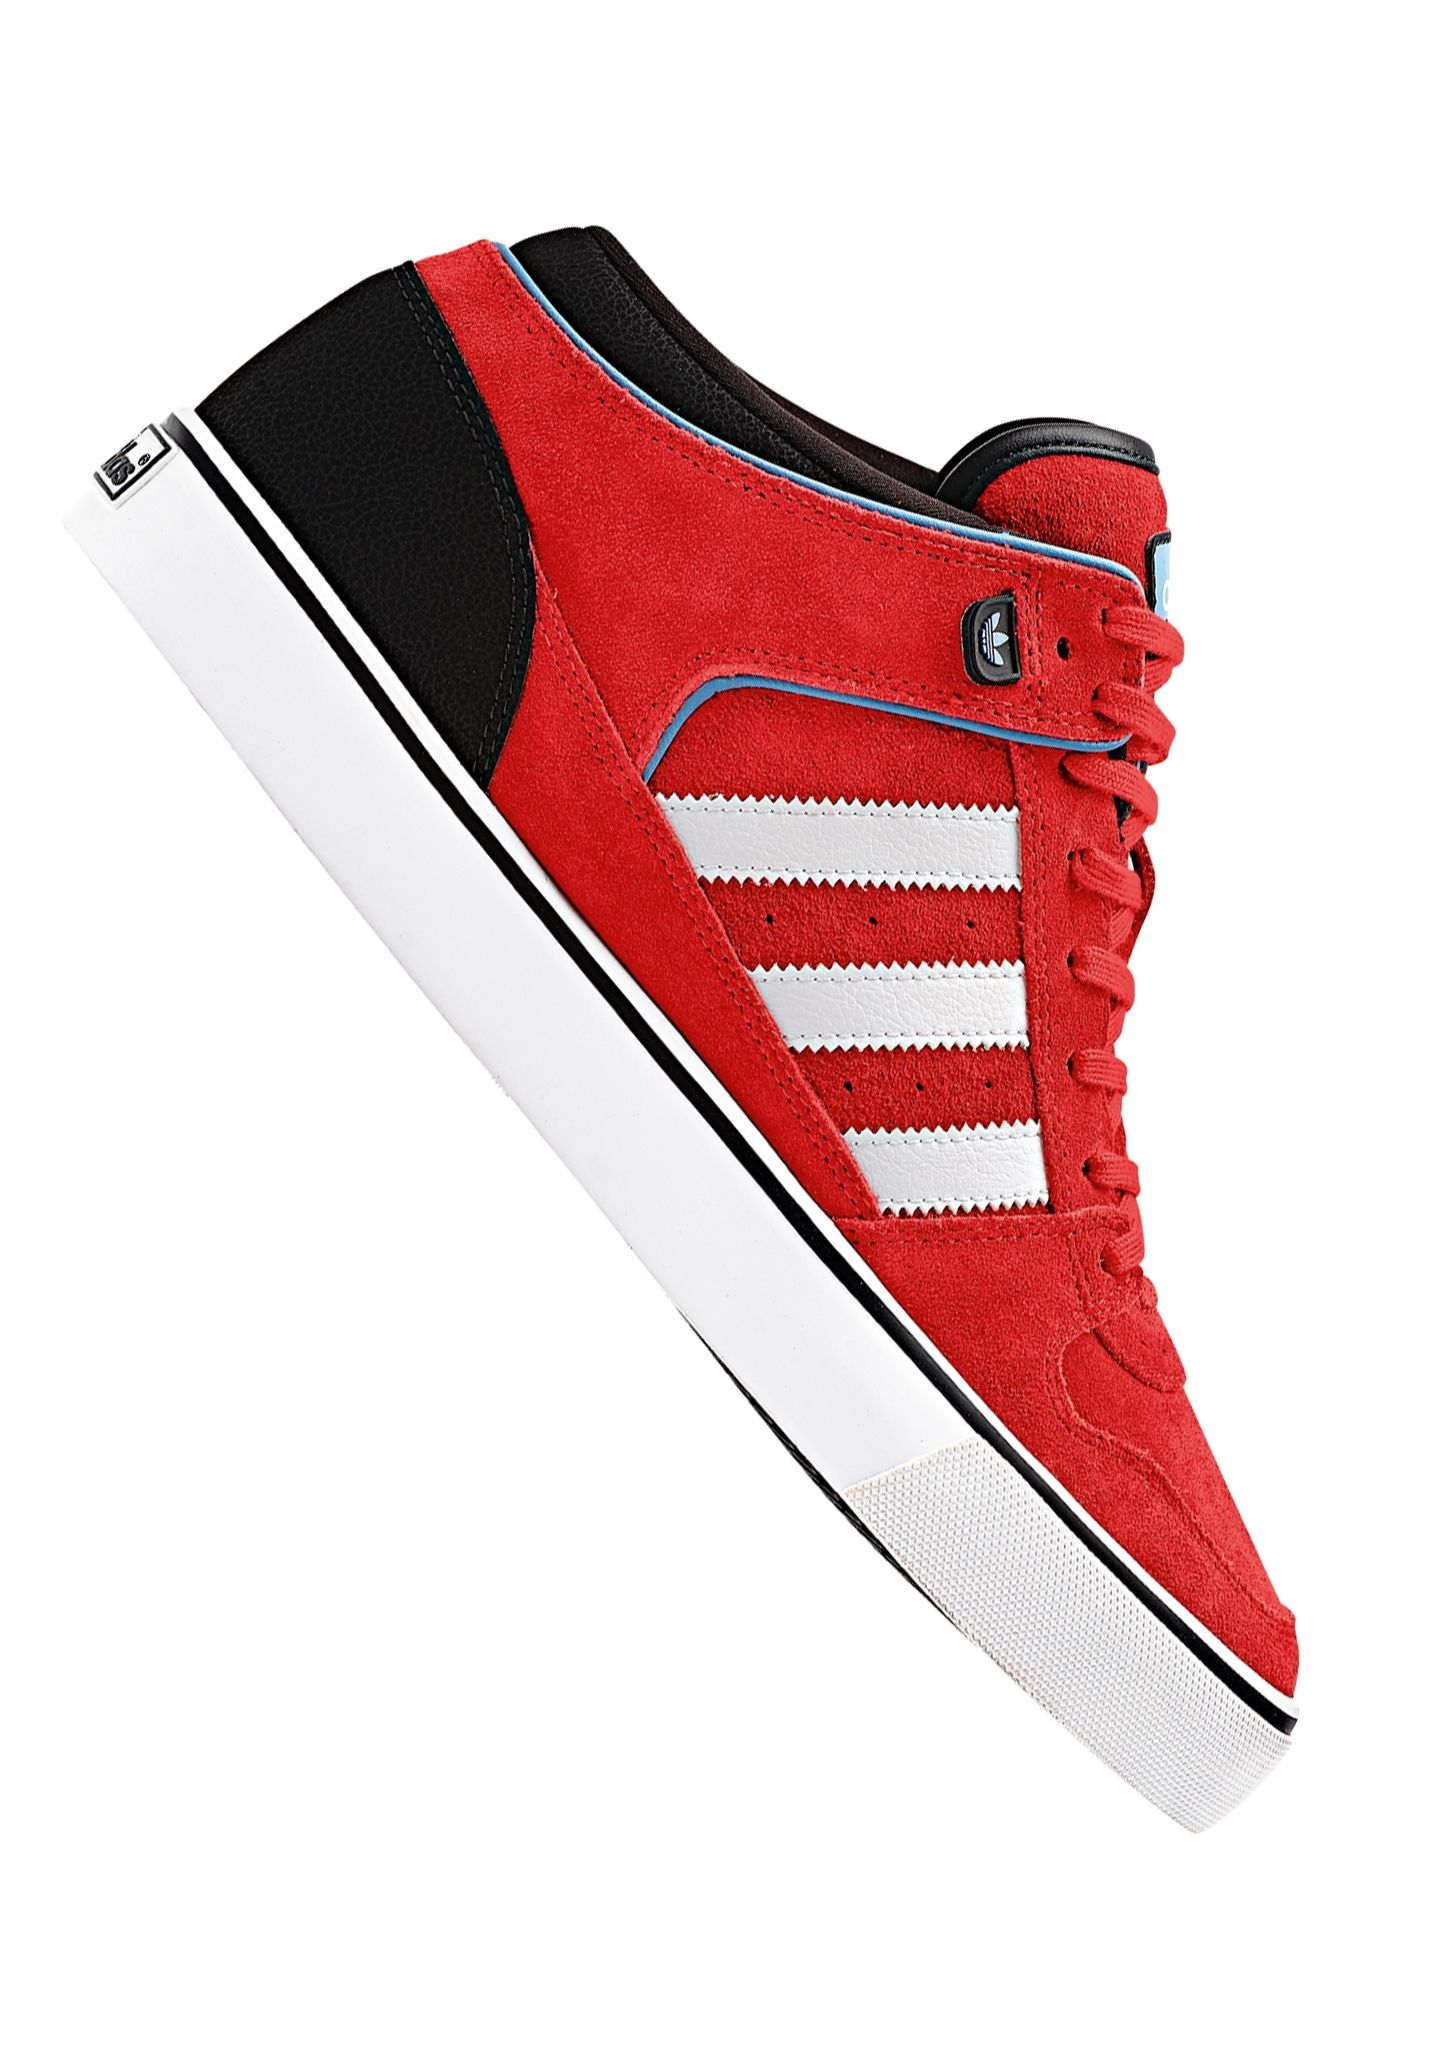 pretty nice 26451 b4755 ADIDAS Culver Vulc Mid core - Sneakers for Men - Red - Plane